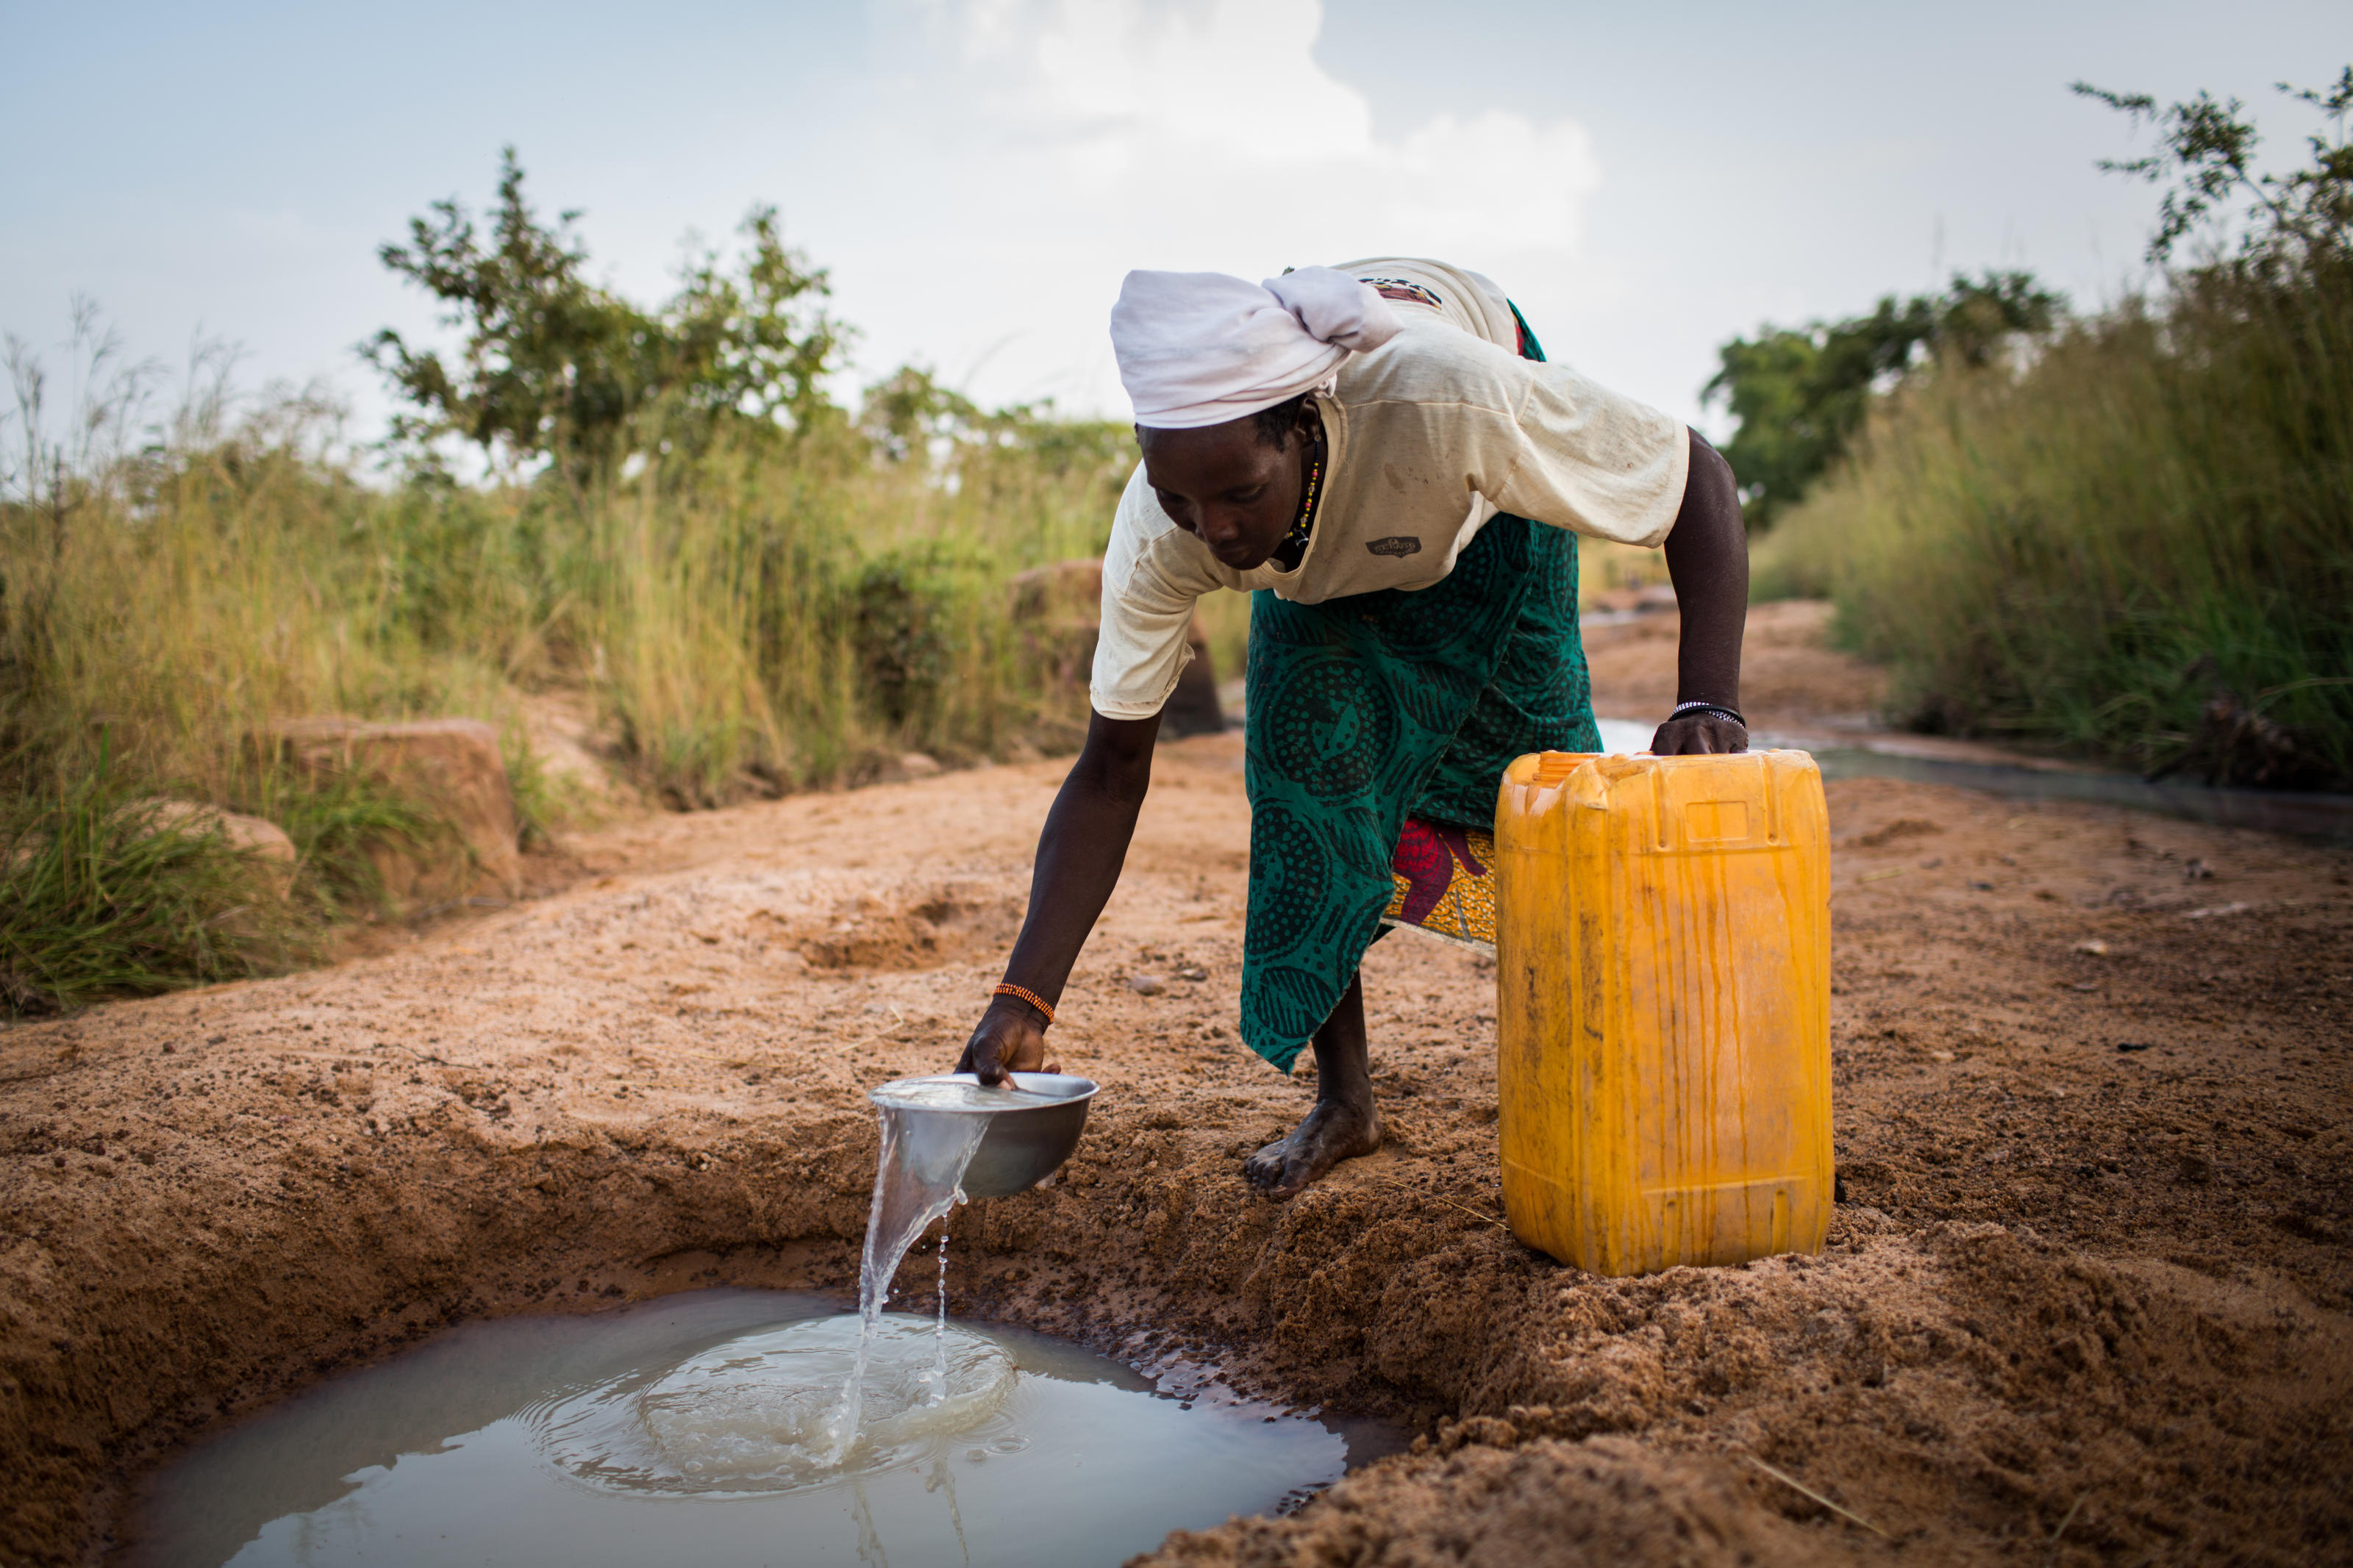 Sawadogo Lamoussa, 42, collects dirty water from a partially dried riverbed in Imbina, Burkina Faso, October 2014.